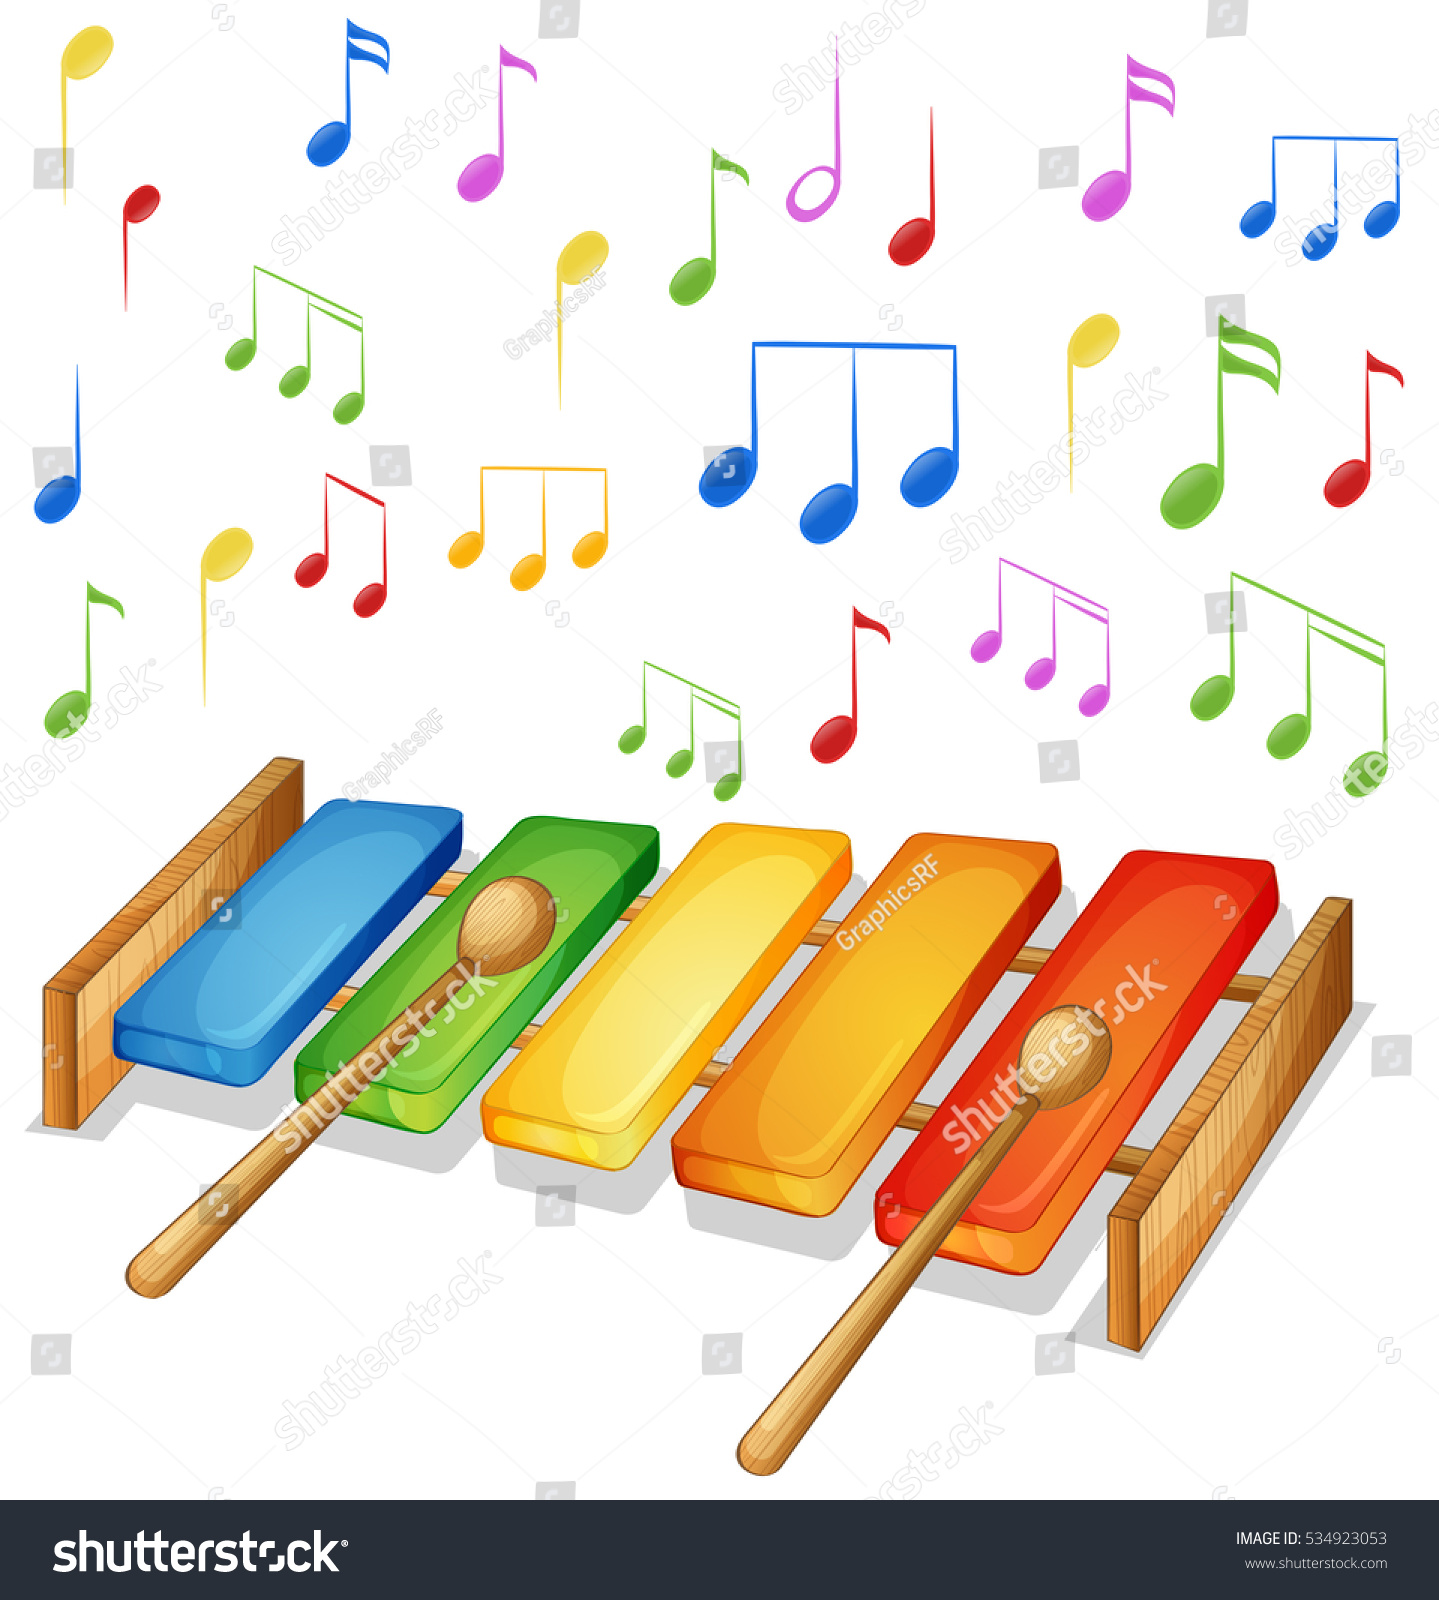 Xylophone Music Notes Background Illustration Stock Vector Royalty Diagram With